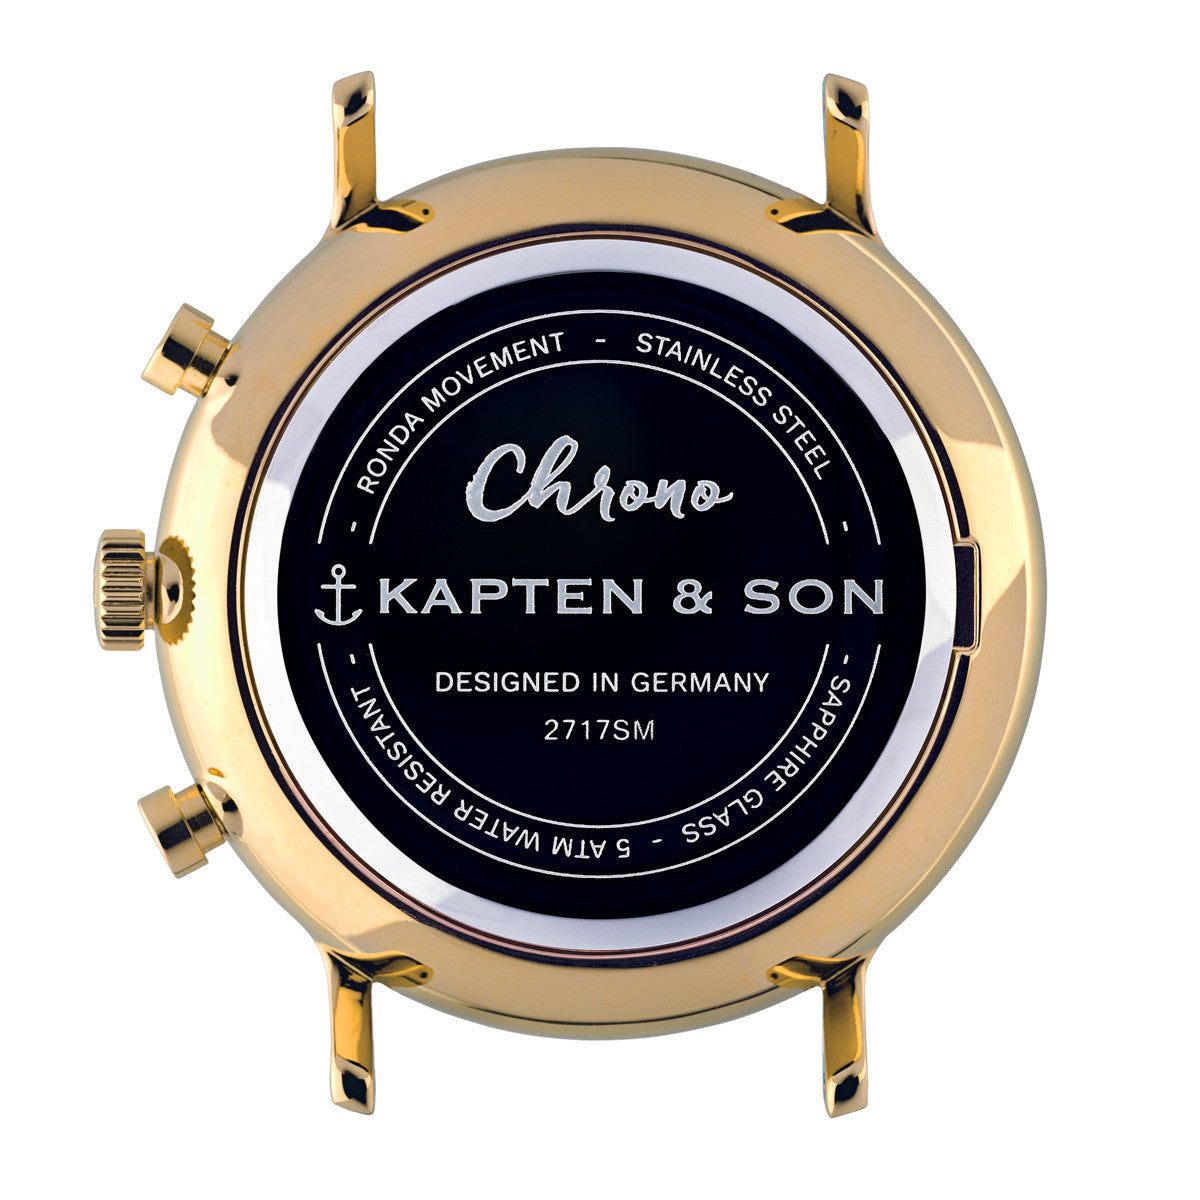 Chrono Gold Steel - Kapten & Son - Japan